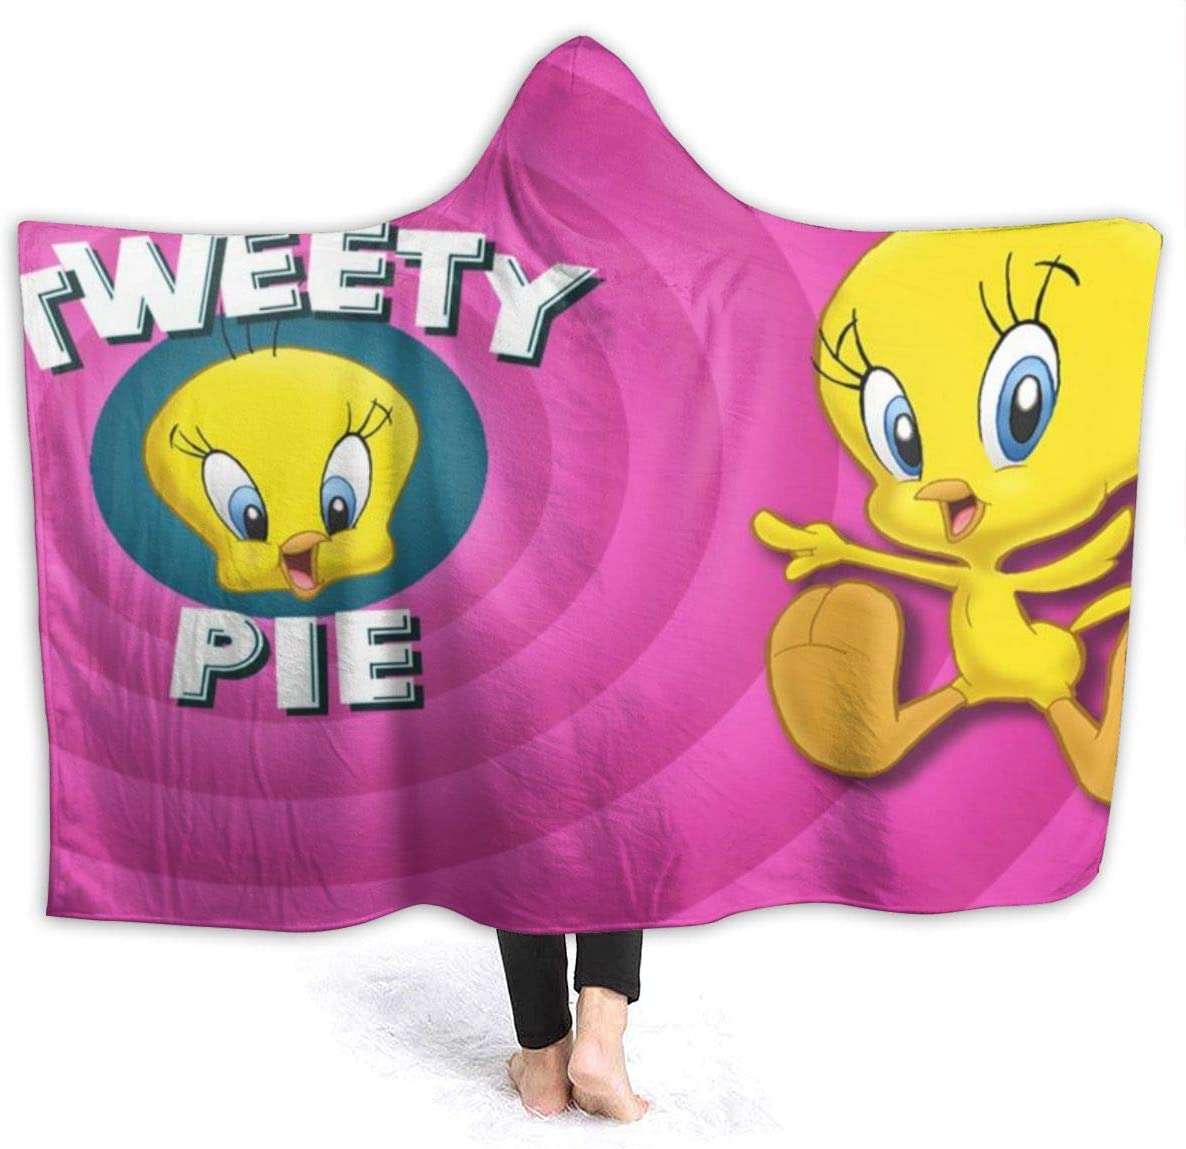 Tweety Bird Hooded Blanket